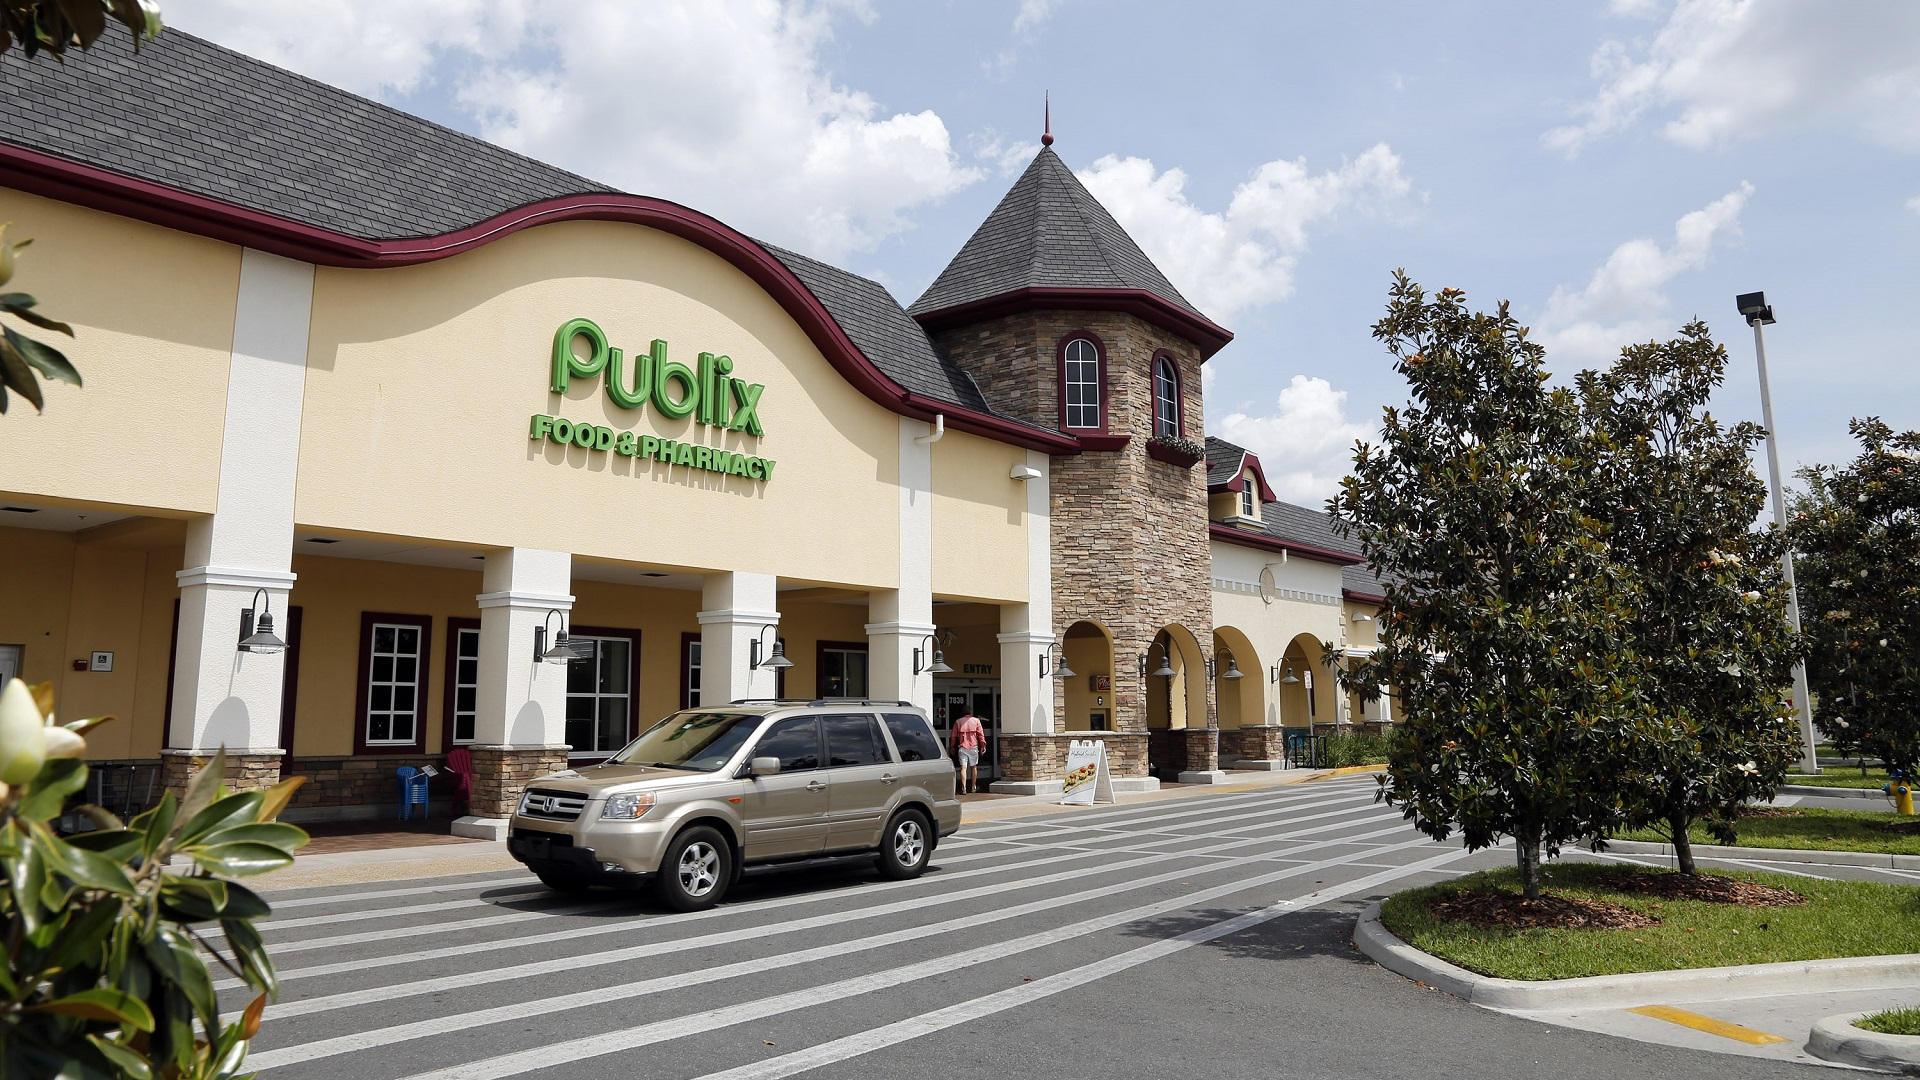 PUBLIX FILE PHOTO